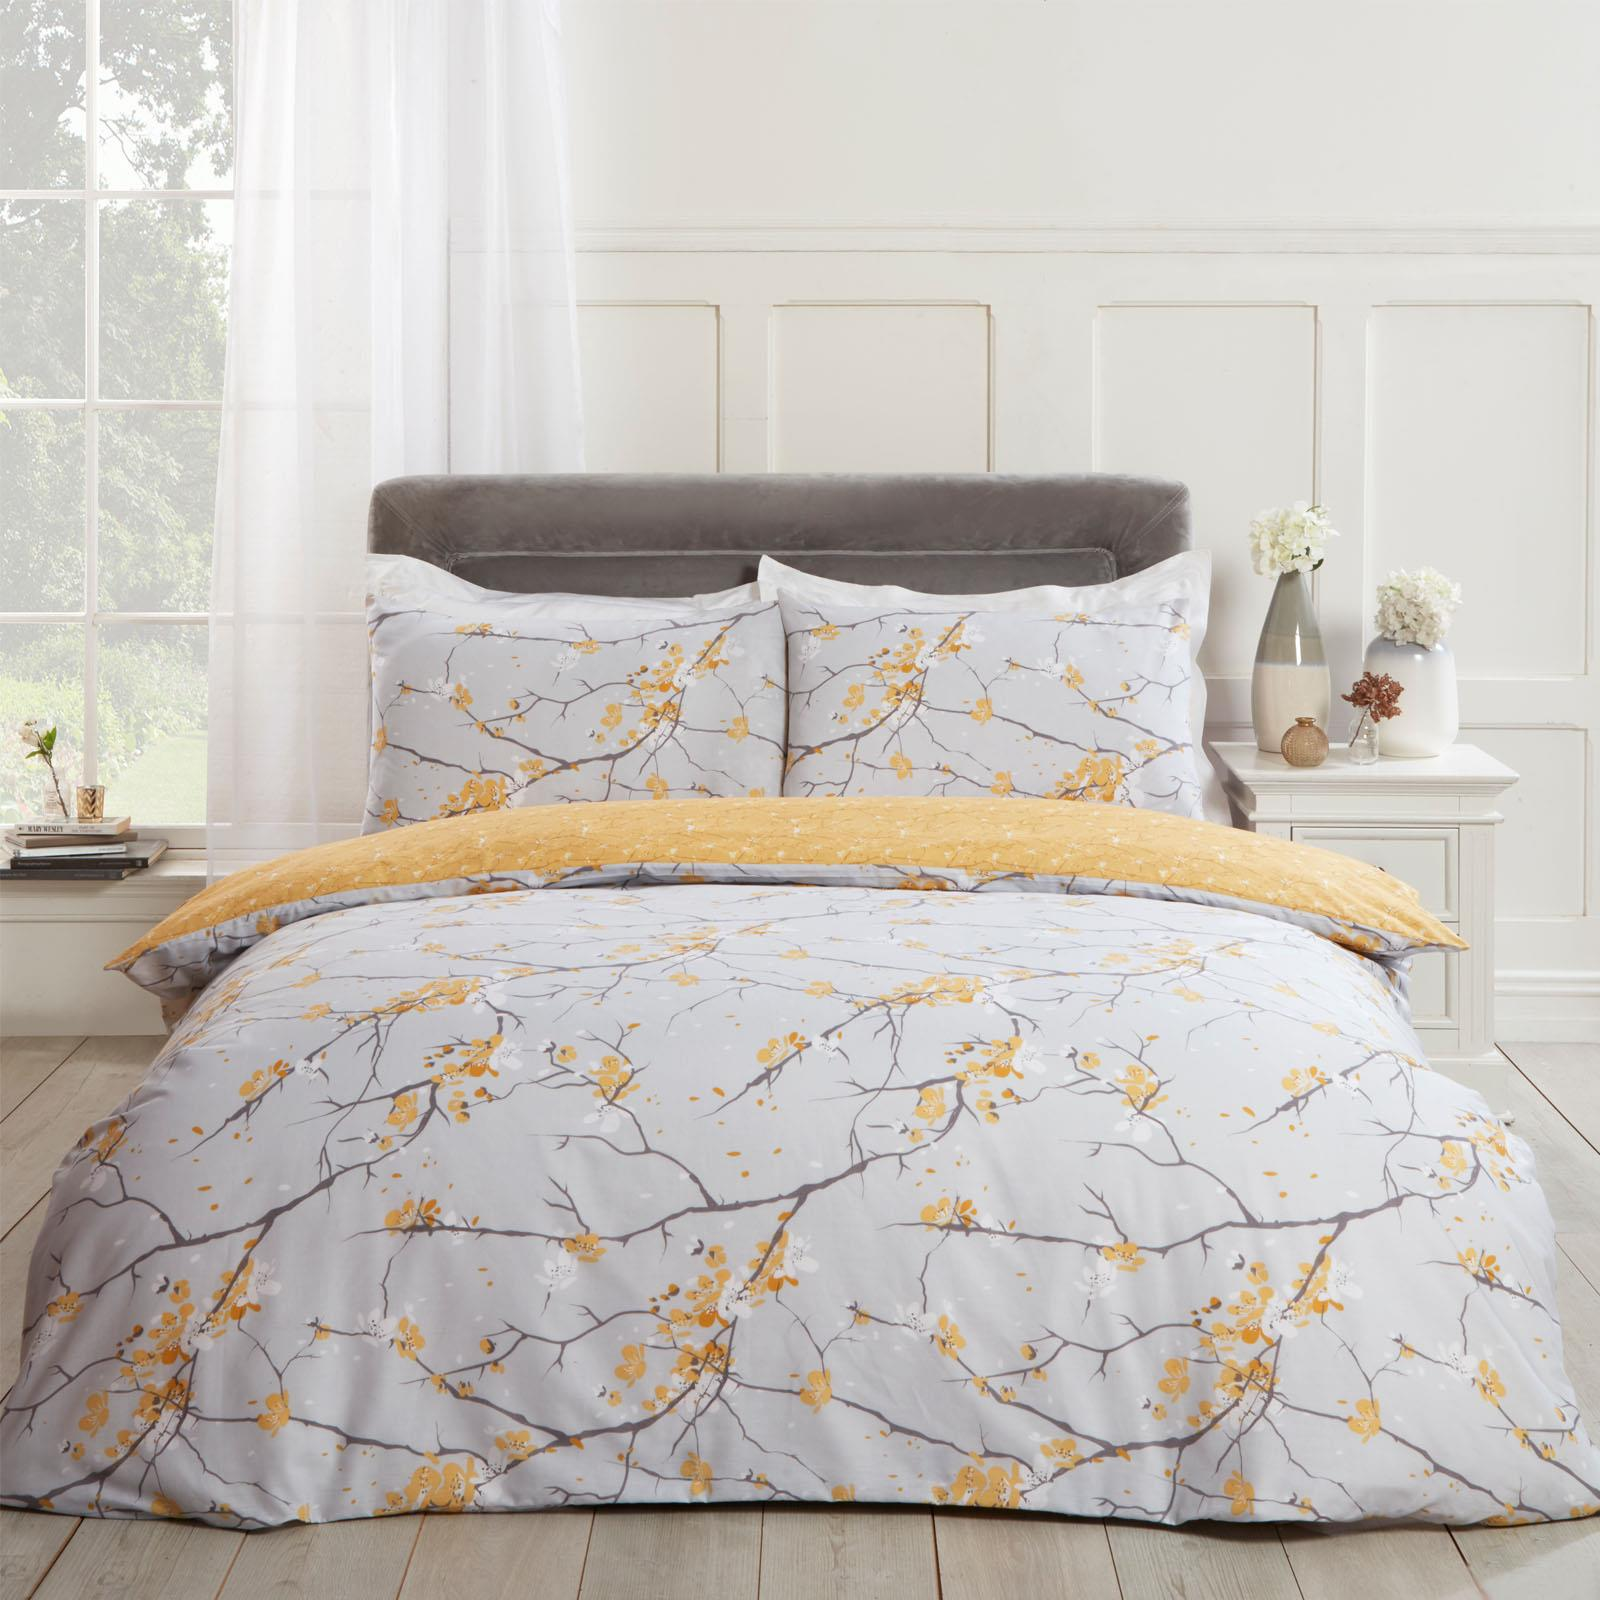 thumbnail 16 - Dreamscene Spring Blossoms Duvet Cover with Pillowcases Bedding Set Blush Ochre